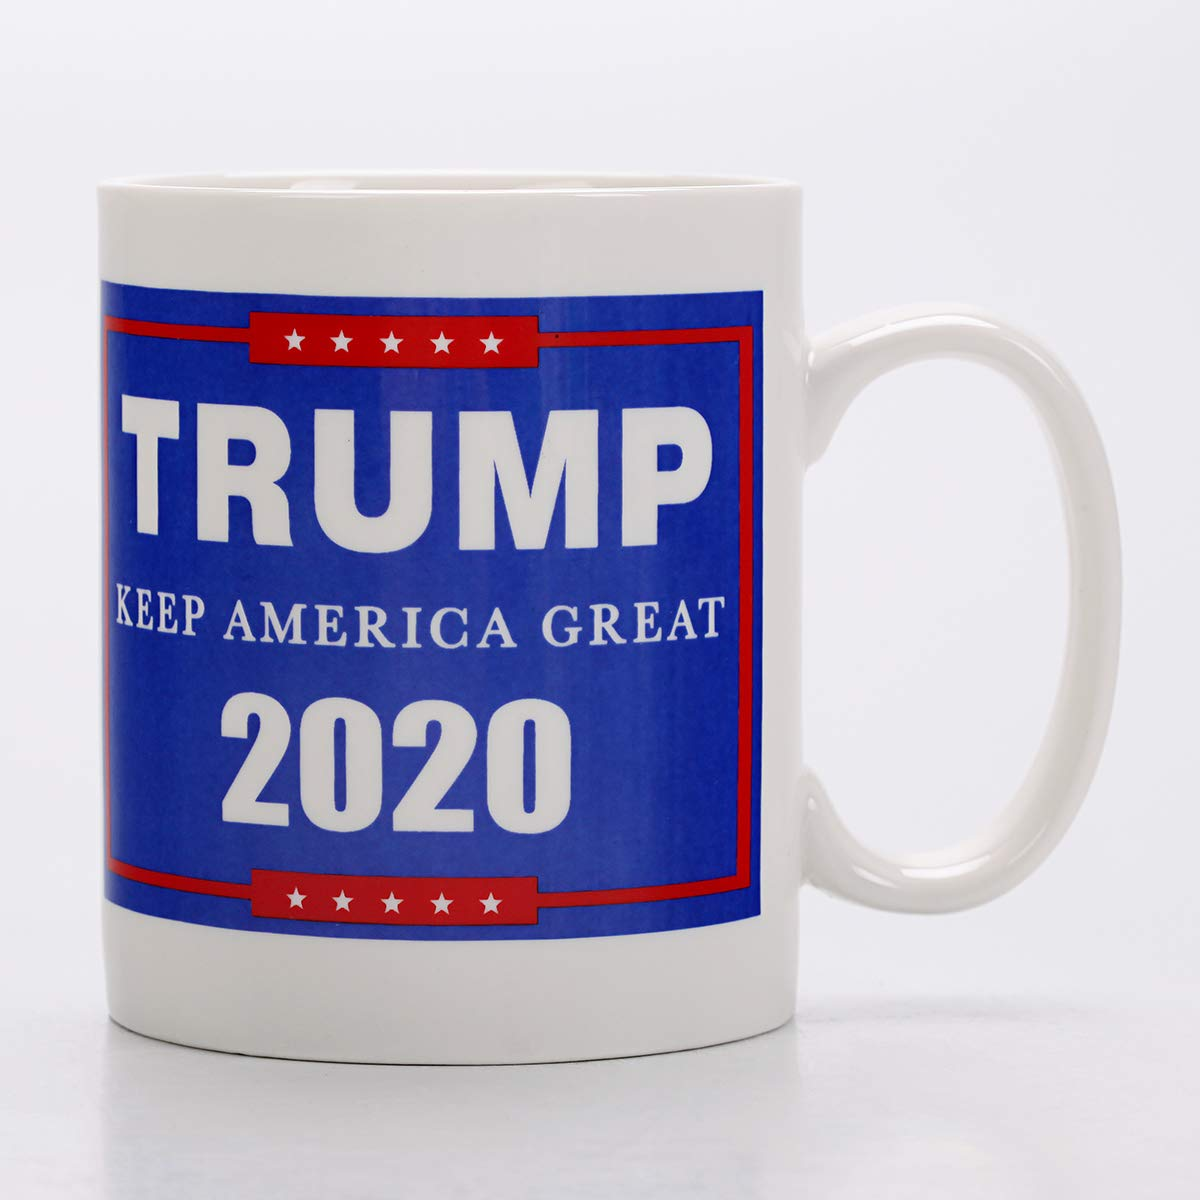 Amazon Com Keep America Great Trump 2020 Campaign Pro Trump Handmade Ceramic Cup Coffee Mugs Tea Cup For Office And Home Funny Gift Maximum Capacity 420ml Kitchen Dining